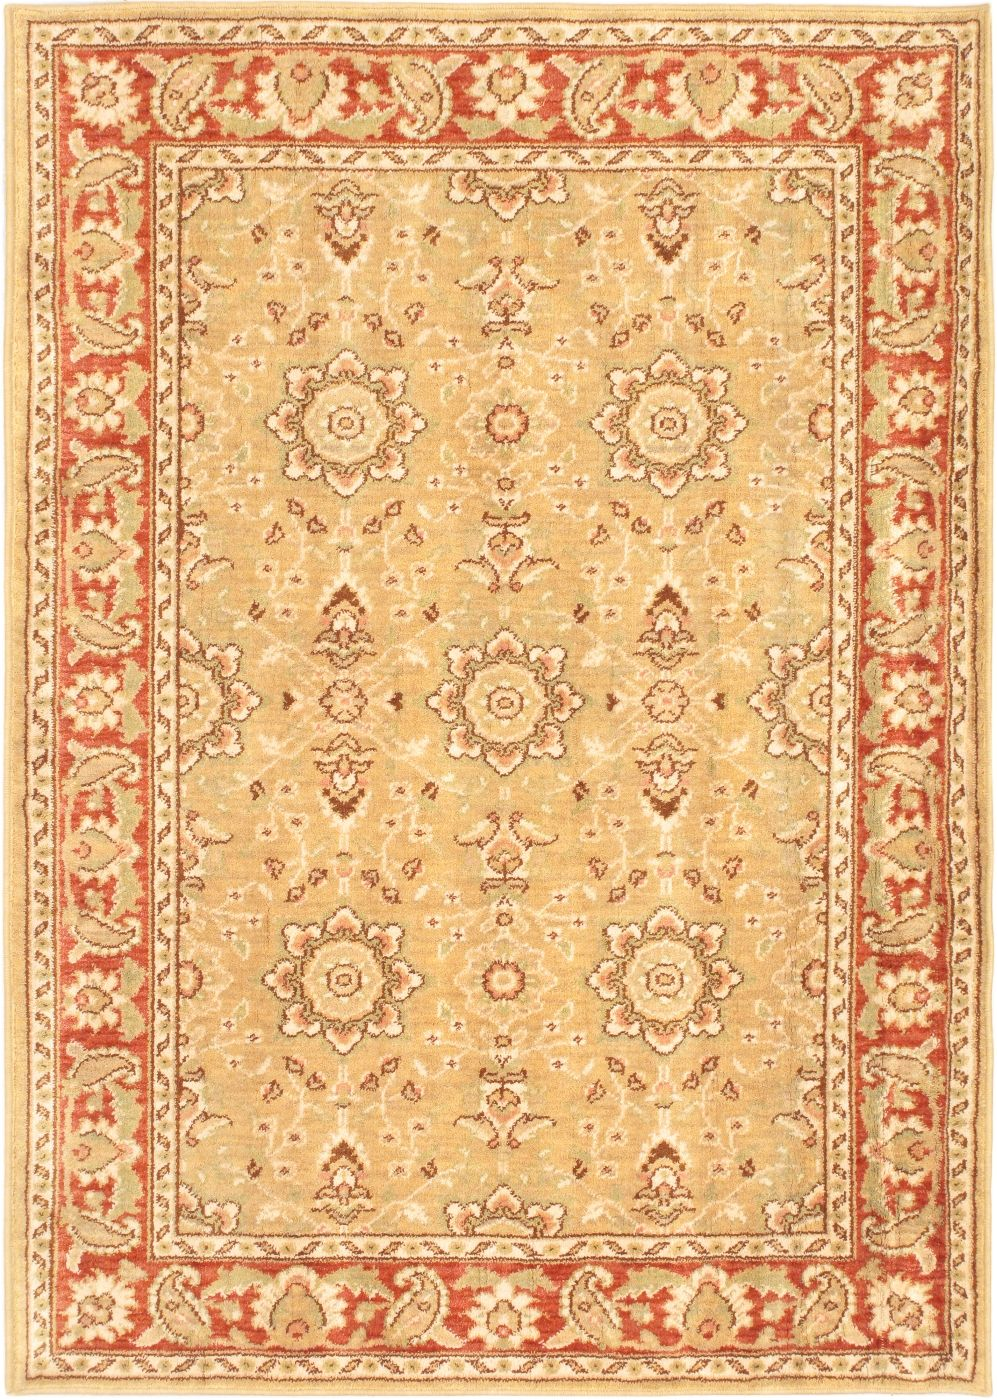 ecarpet gallery lotus garden espresso traditional area rug collection